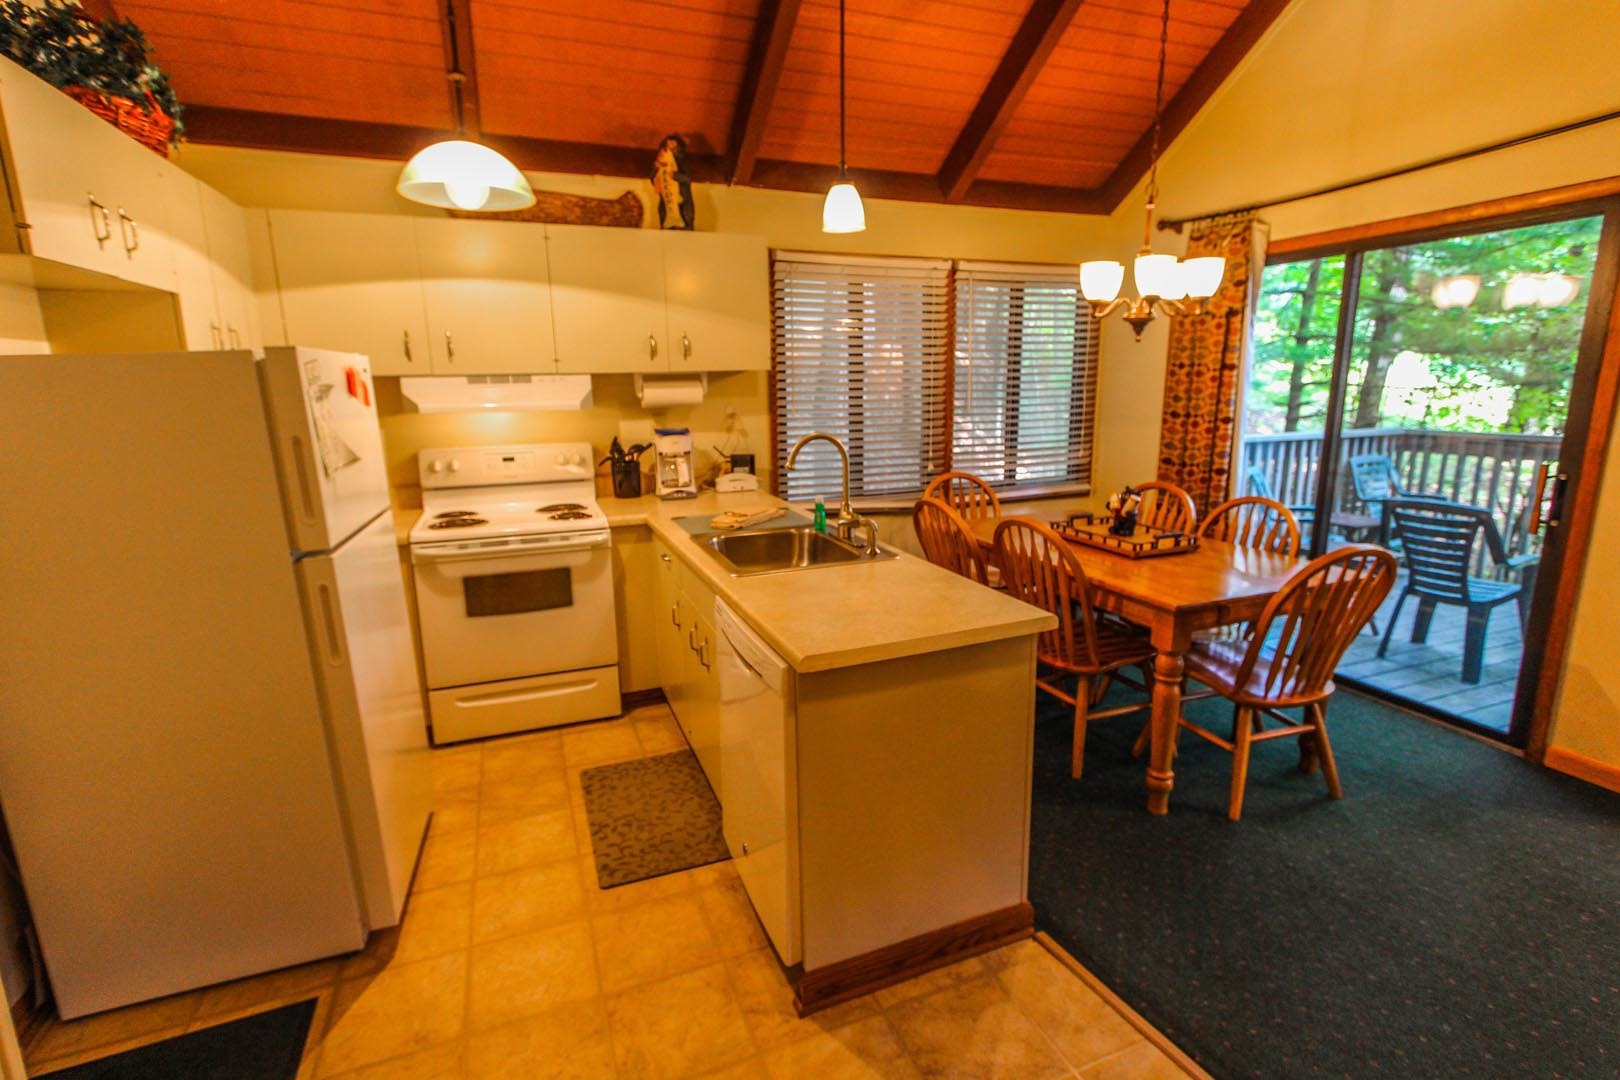 A fully equipped kitchen at VRI's Golf Club Villas in Marble Hill, Georgia.